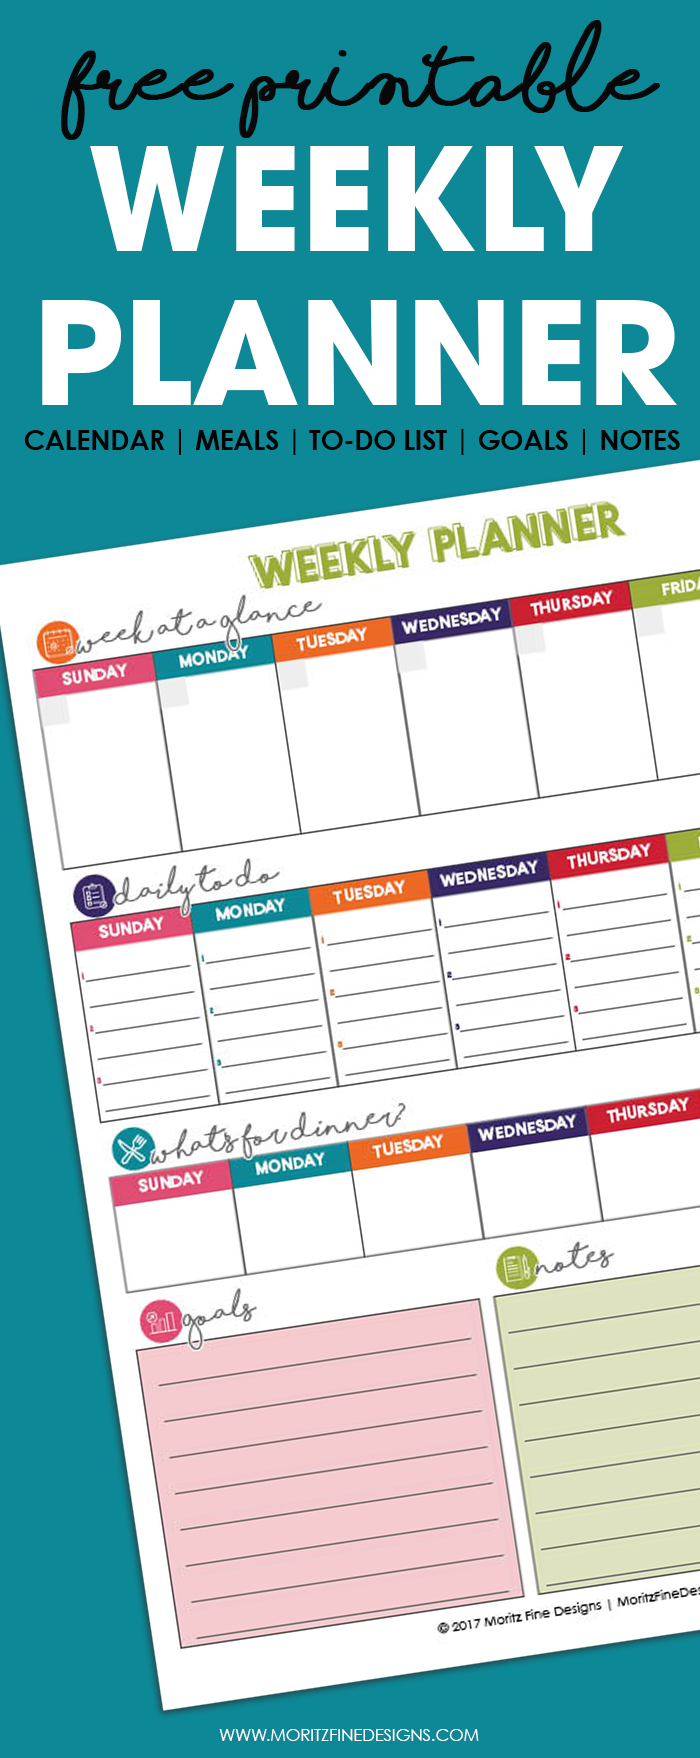 This free printable undated Weekly Planner is the best way to get your entire week organized. It includes a calendar, meal plan, to-do list, goals and notes all on one easy to manage page. #printableplanner #calendarideas #weeklyspread #weeklyplanner #freeprintableorganizer #MealPlanning